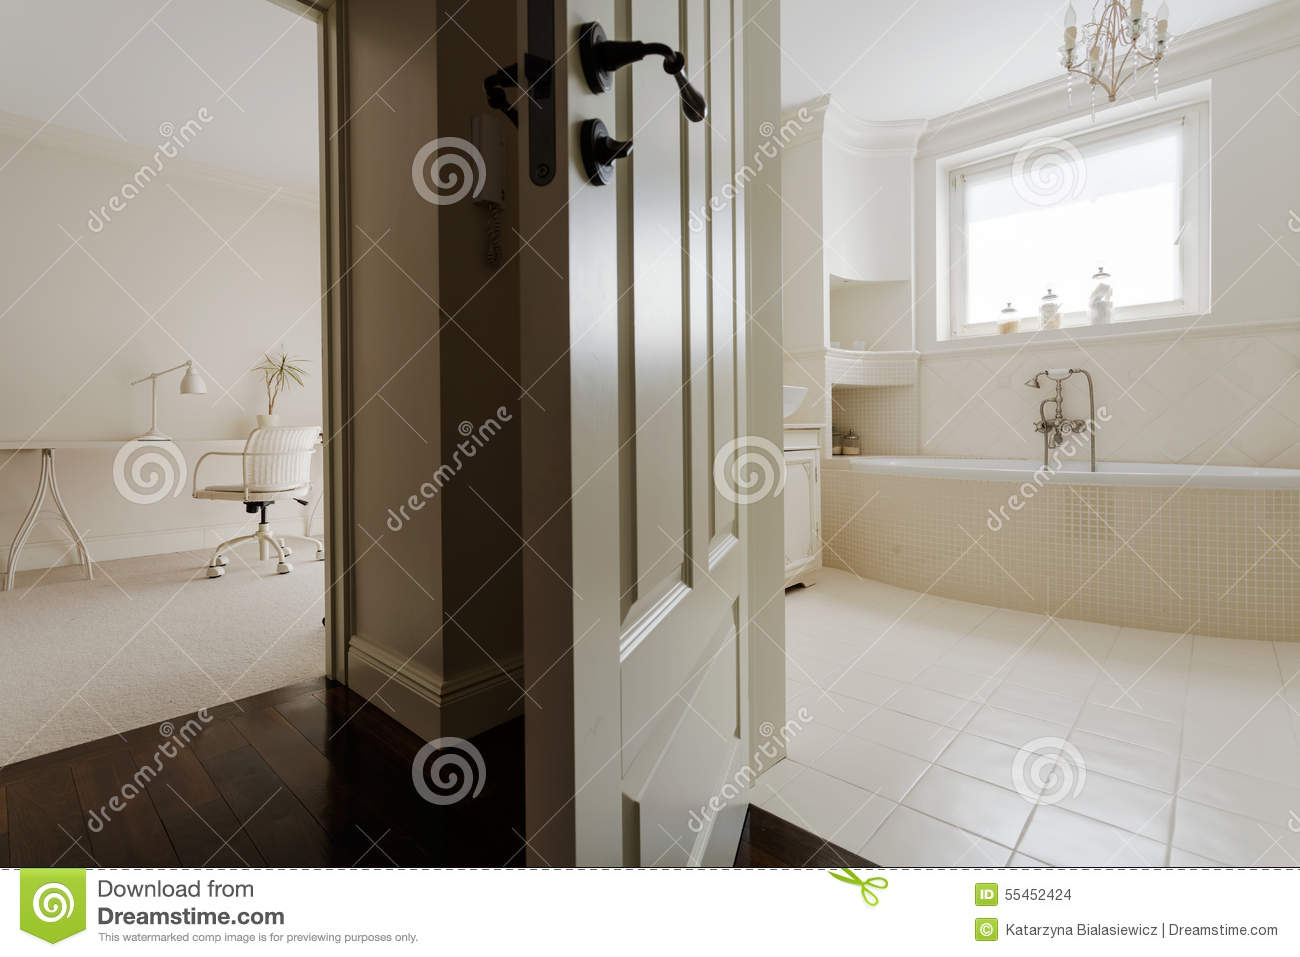 Bedroom With Private Bathroom Stock Photo Image 55452424